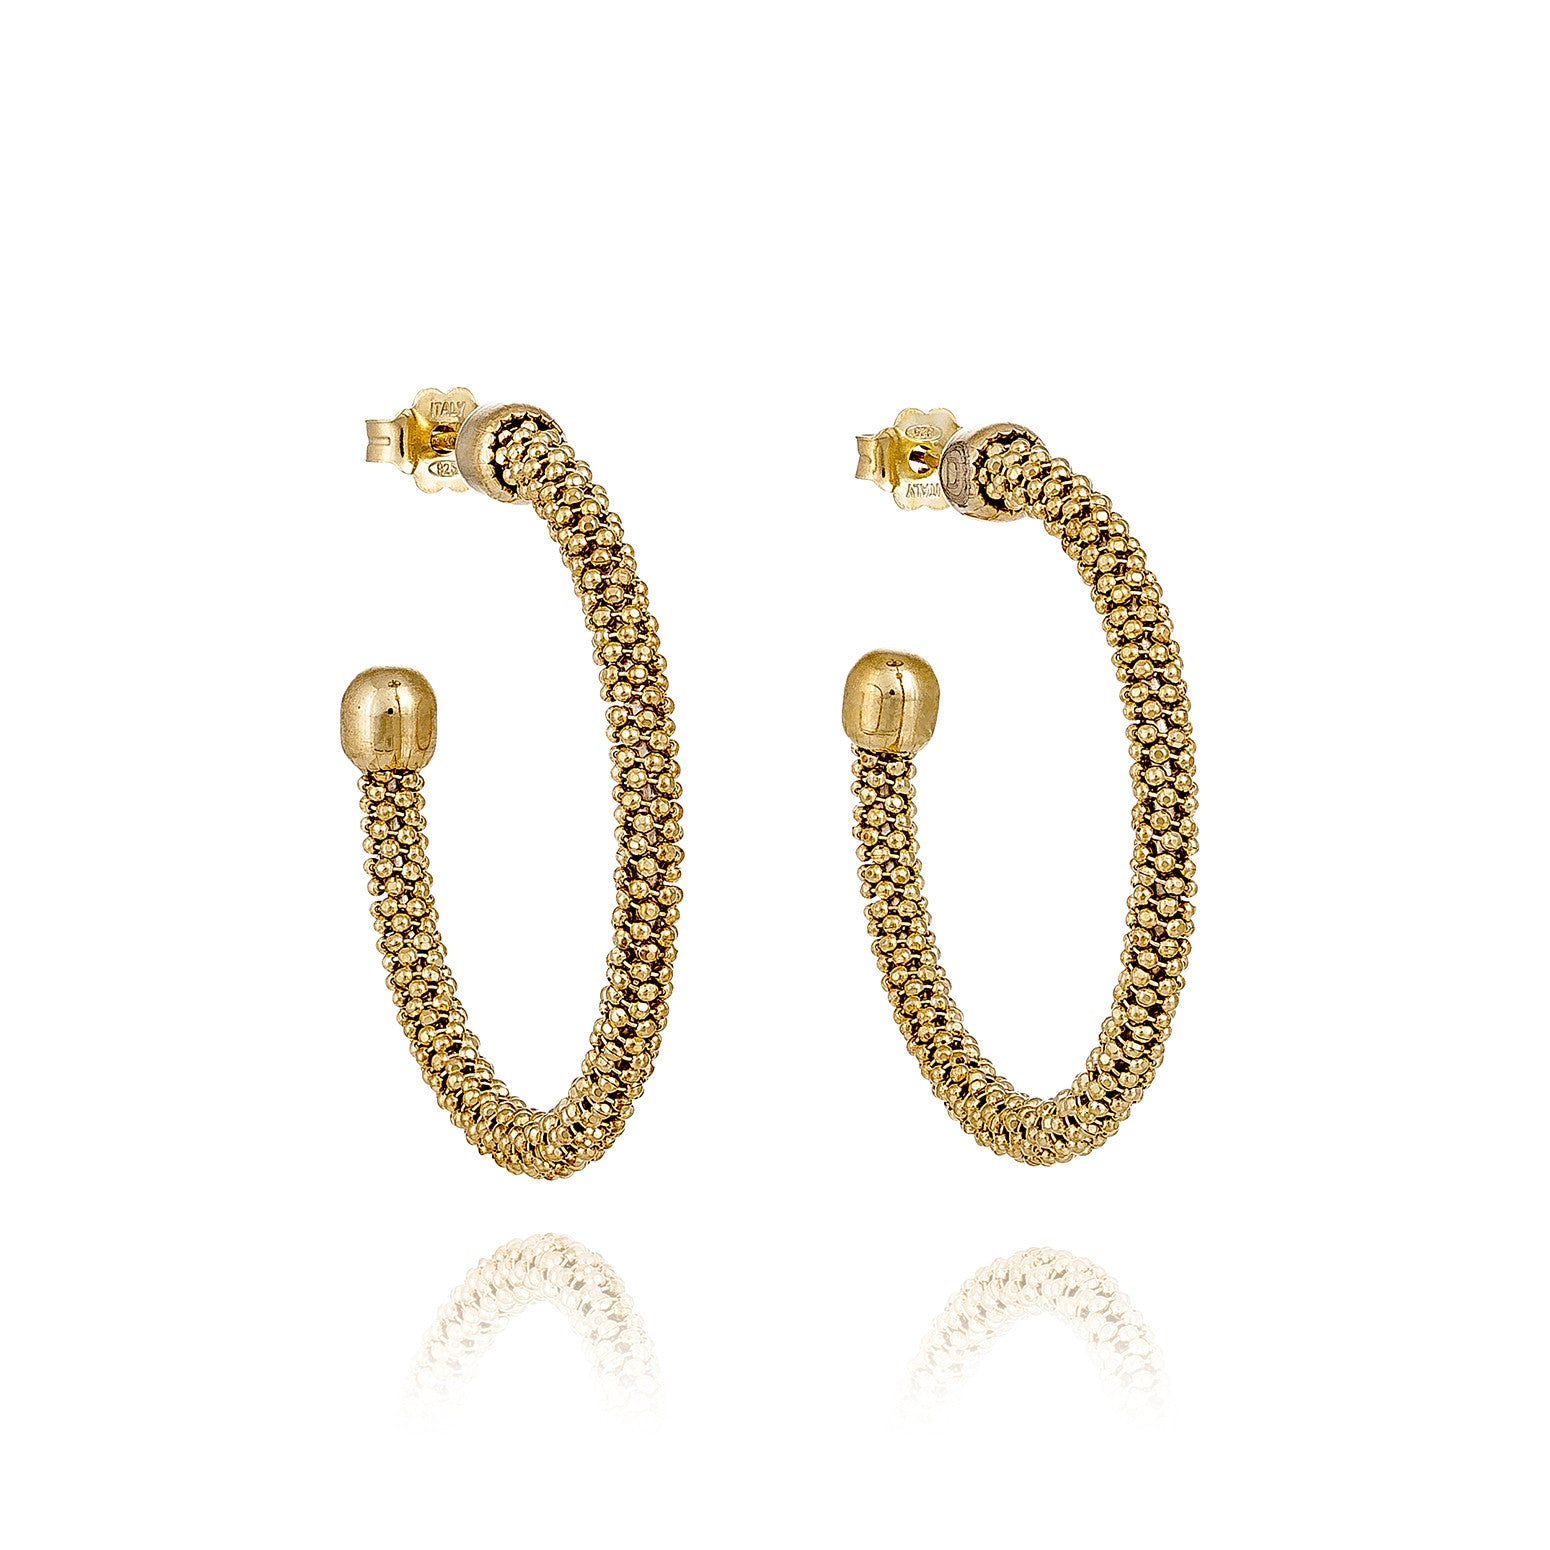 Durrah Jewelry Gold Spring Hoop Earrings